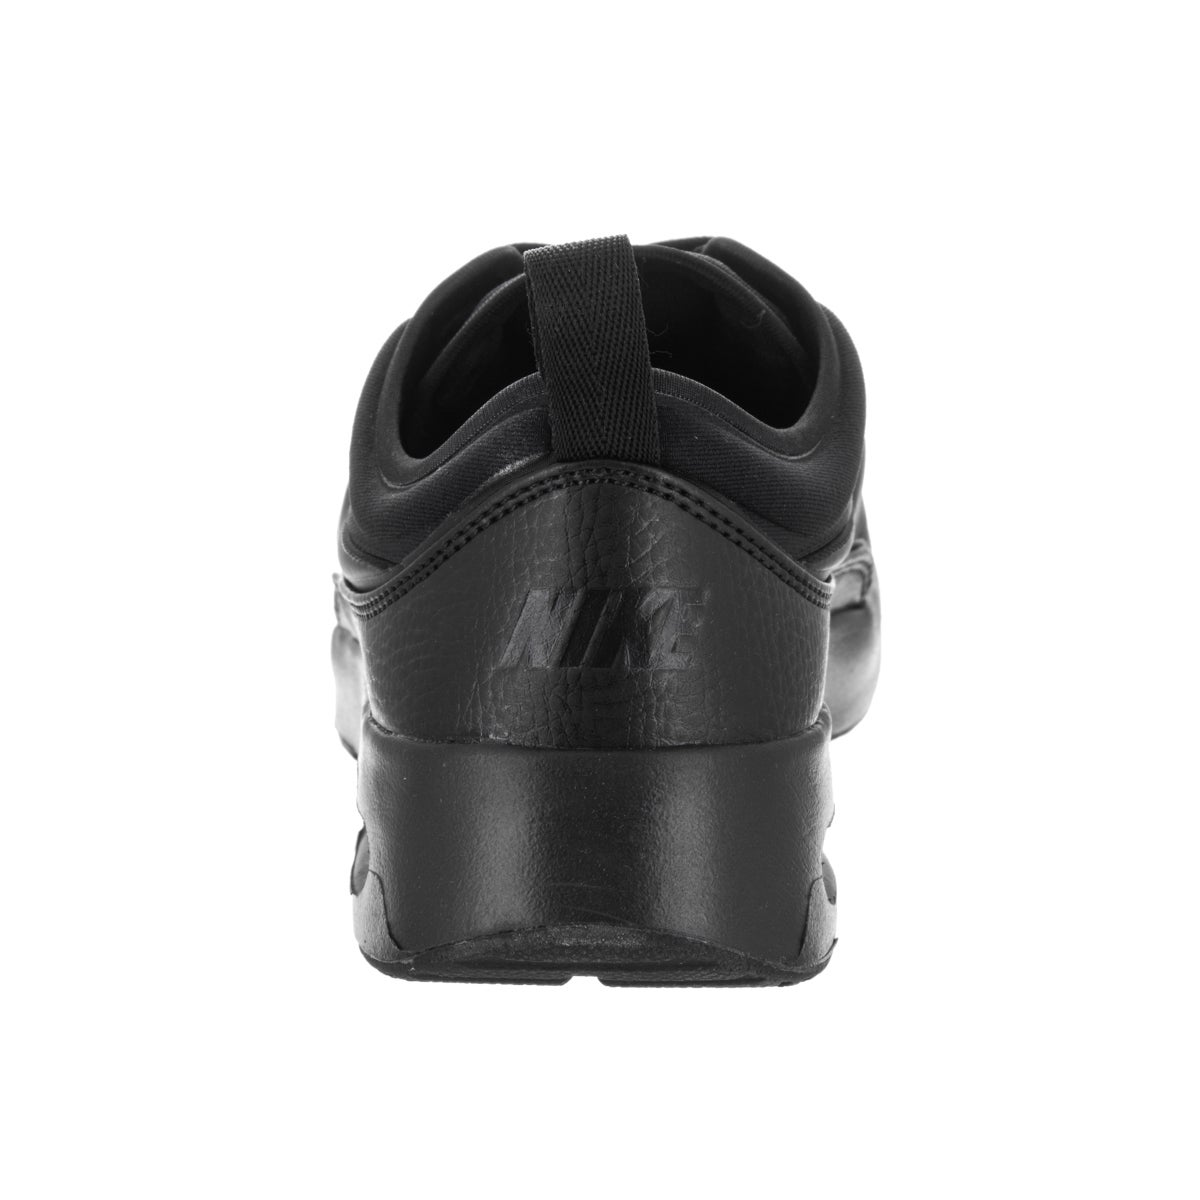 89c9a714d7 Shop Nike Women's Air Max Thea Ultra Premium Black and Cool Grey Faux  Leather Running Shoe - Free Shipping Today - Overstock - 13679970